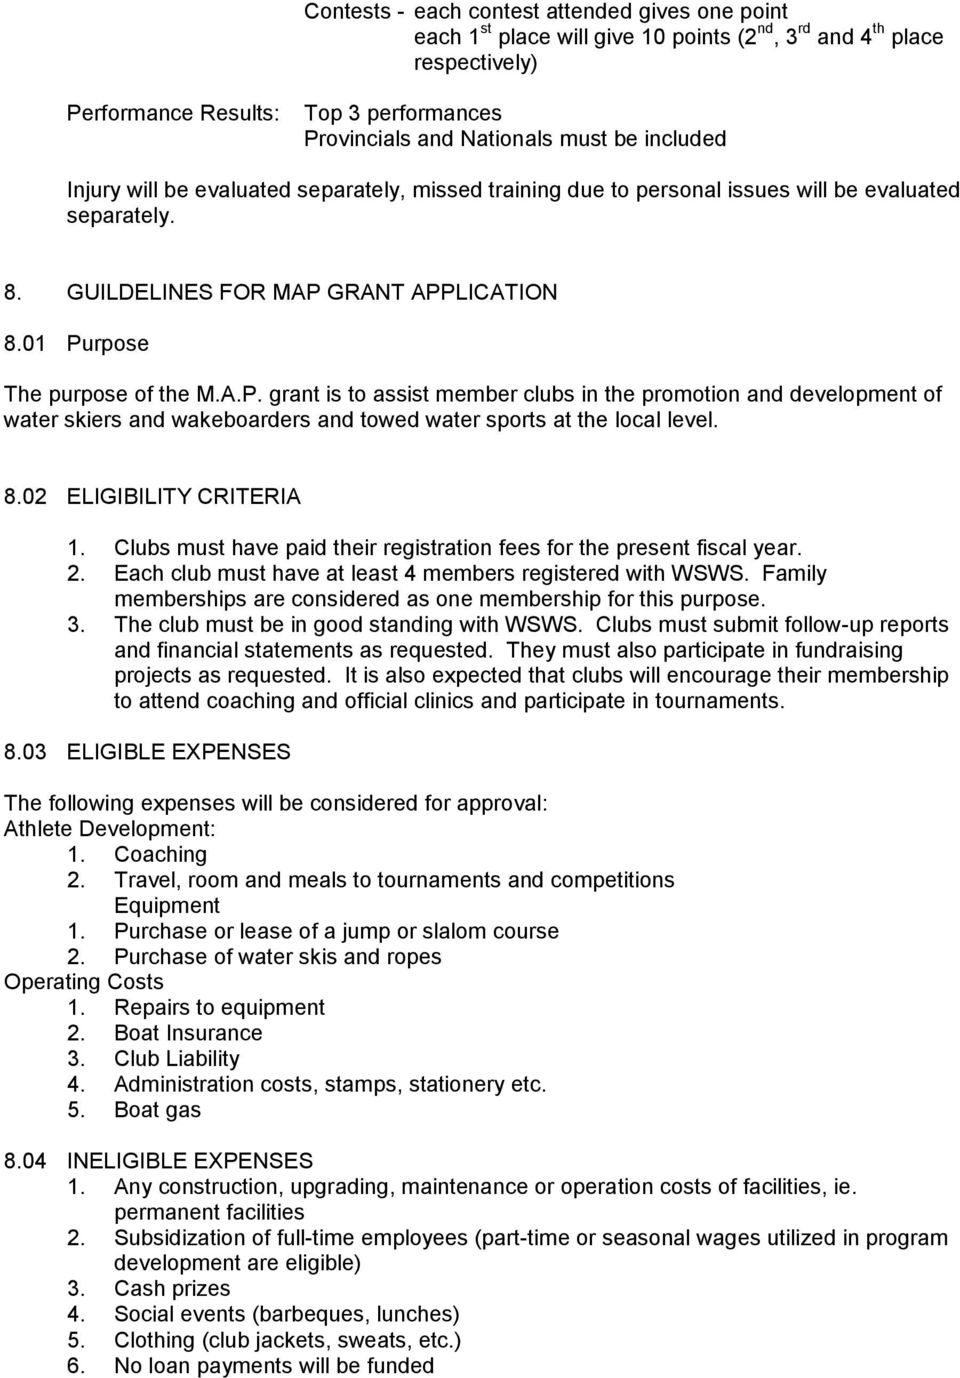 GRANT APPLICATION 8.01 Purpose The purpose of the M.A.P. grant is to assist member clubs in the promotion and development of water skiers and wakeboarders and towed water sports at the local level. 8.02 ELIGIBILITY CRITERIA 1.